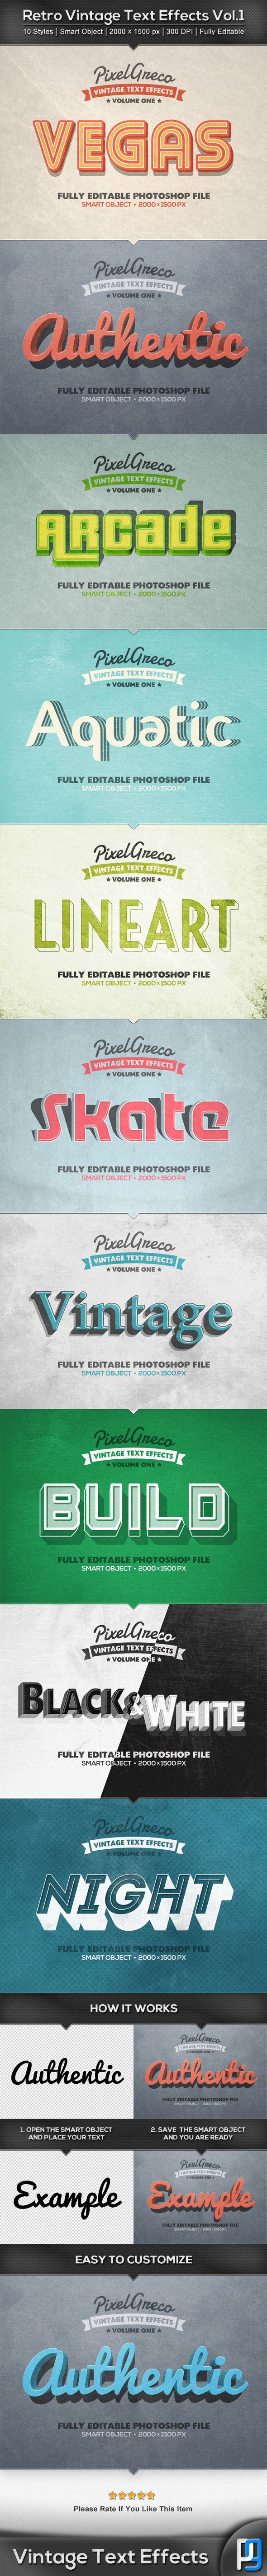 Retro Vintage Text Effects Vol.1 : Check out this great #graphicriver item 'Retro Vintage Text Effects Vol.1' http://graphicriver.net/item/retro-vintage-text-effects-vol1/8935050?ref=25EGY